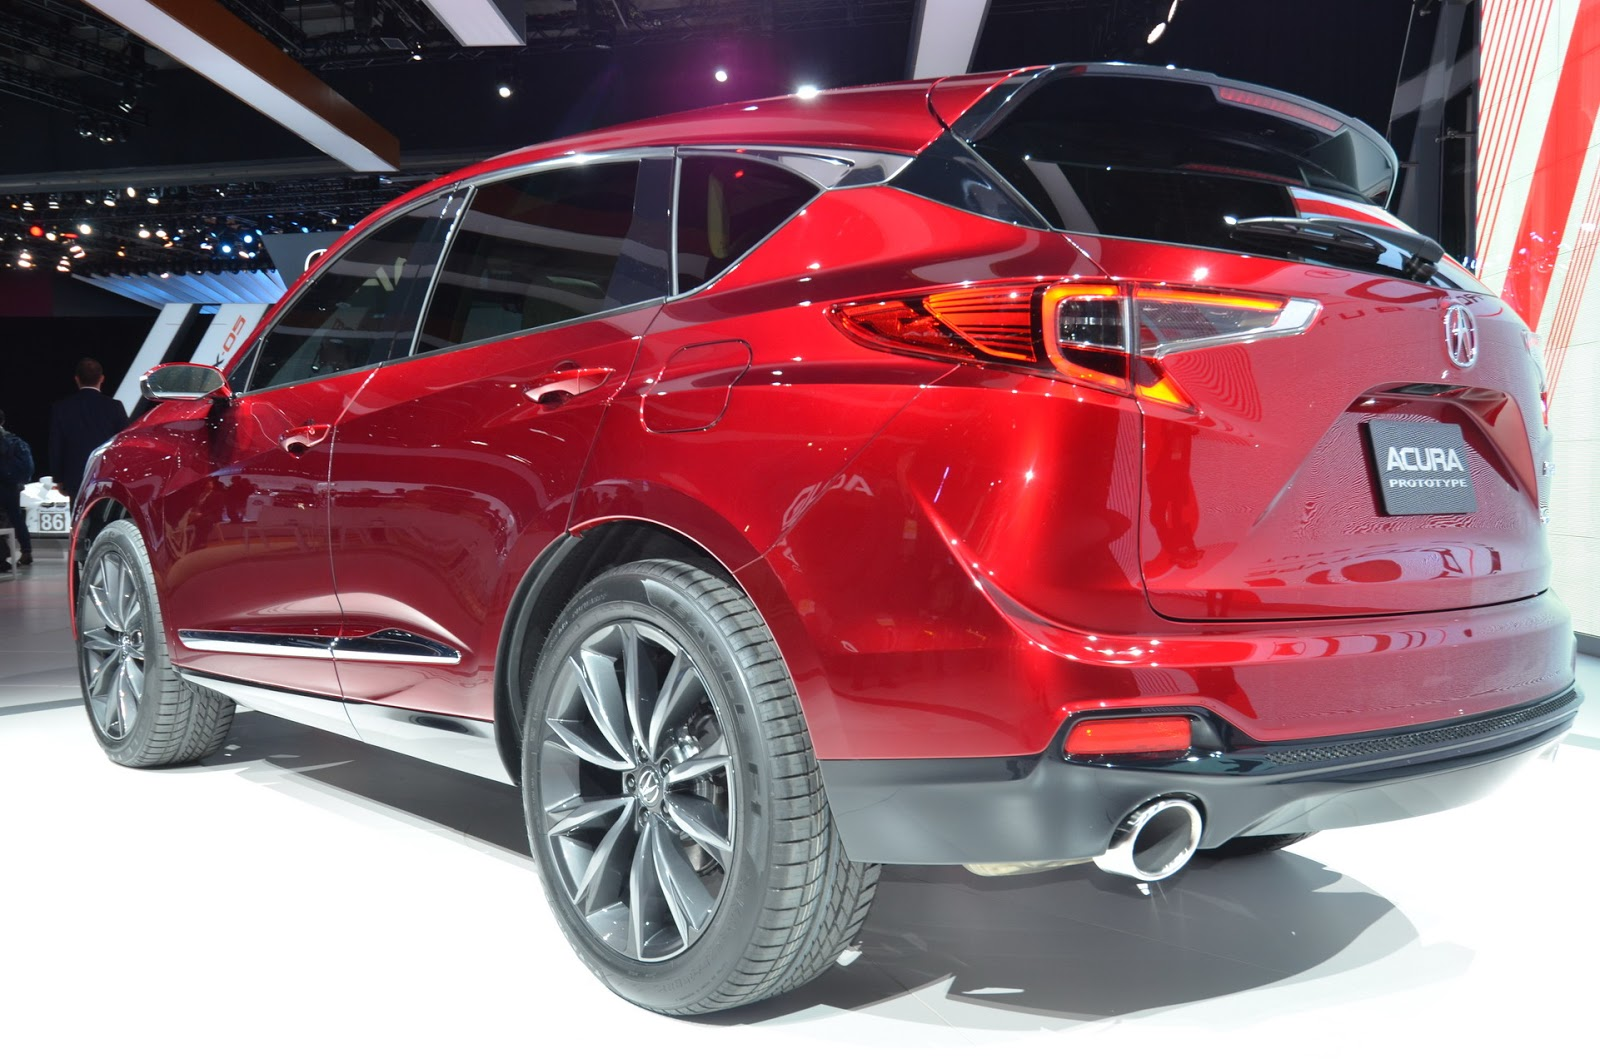 2019 acura rdx prototype almost ready for the road carscoops. Black Bedroom Furniture Sets. Home Design Ideas